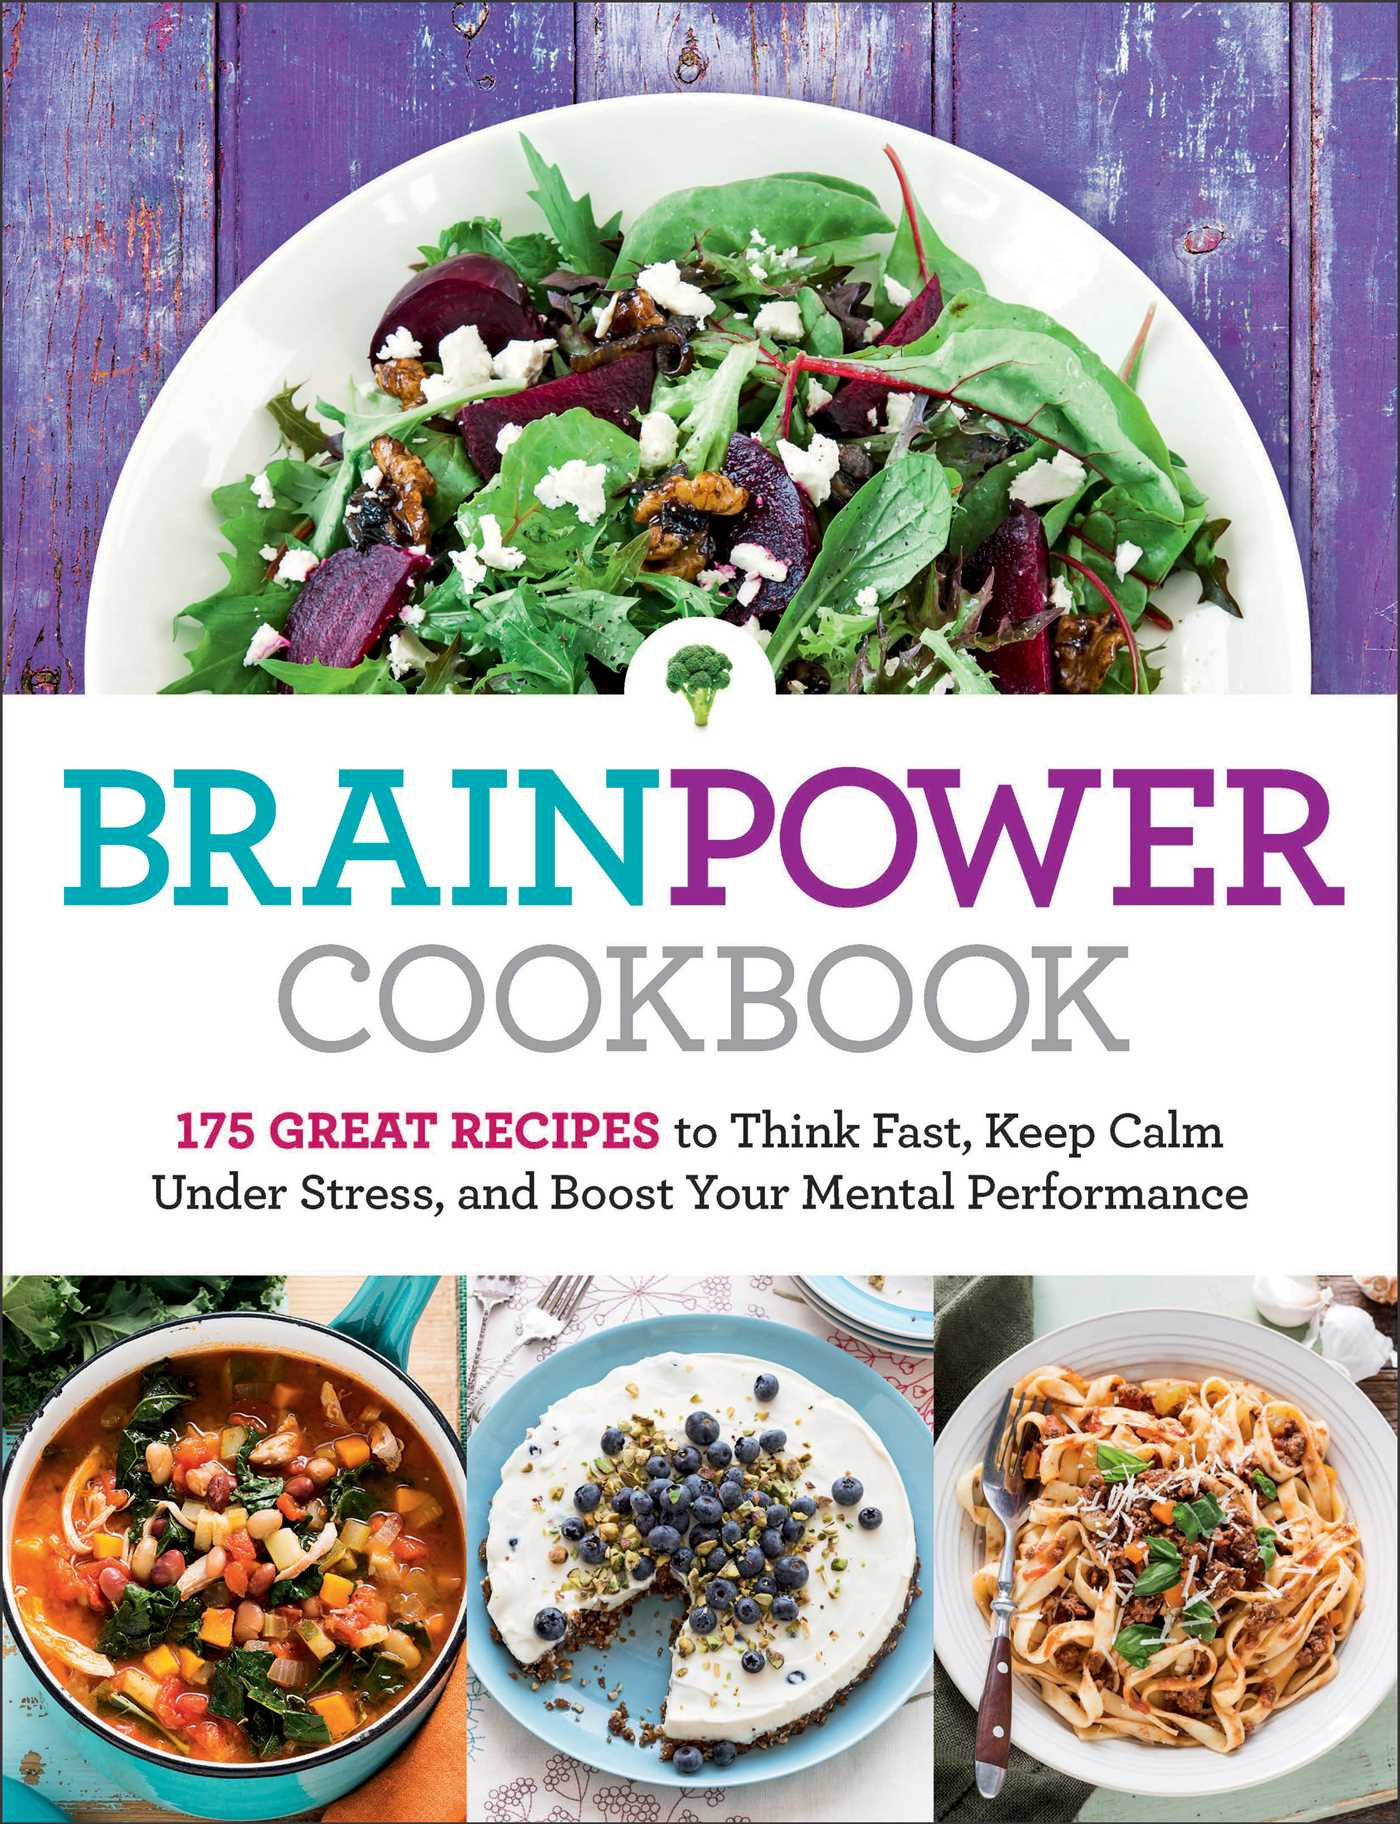 Brain Power Cookbook 175 Great Recipes toThink Fast, Kepp Calm Under Stress, and Boost Your Mental Performance